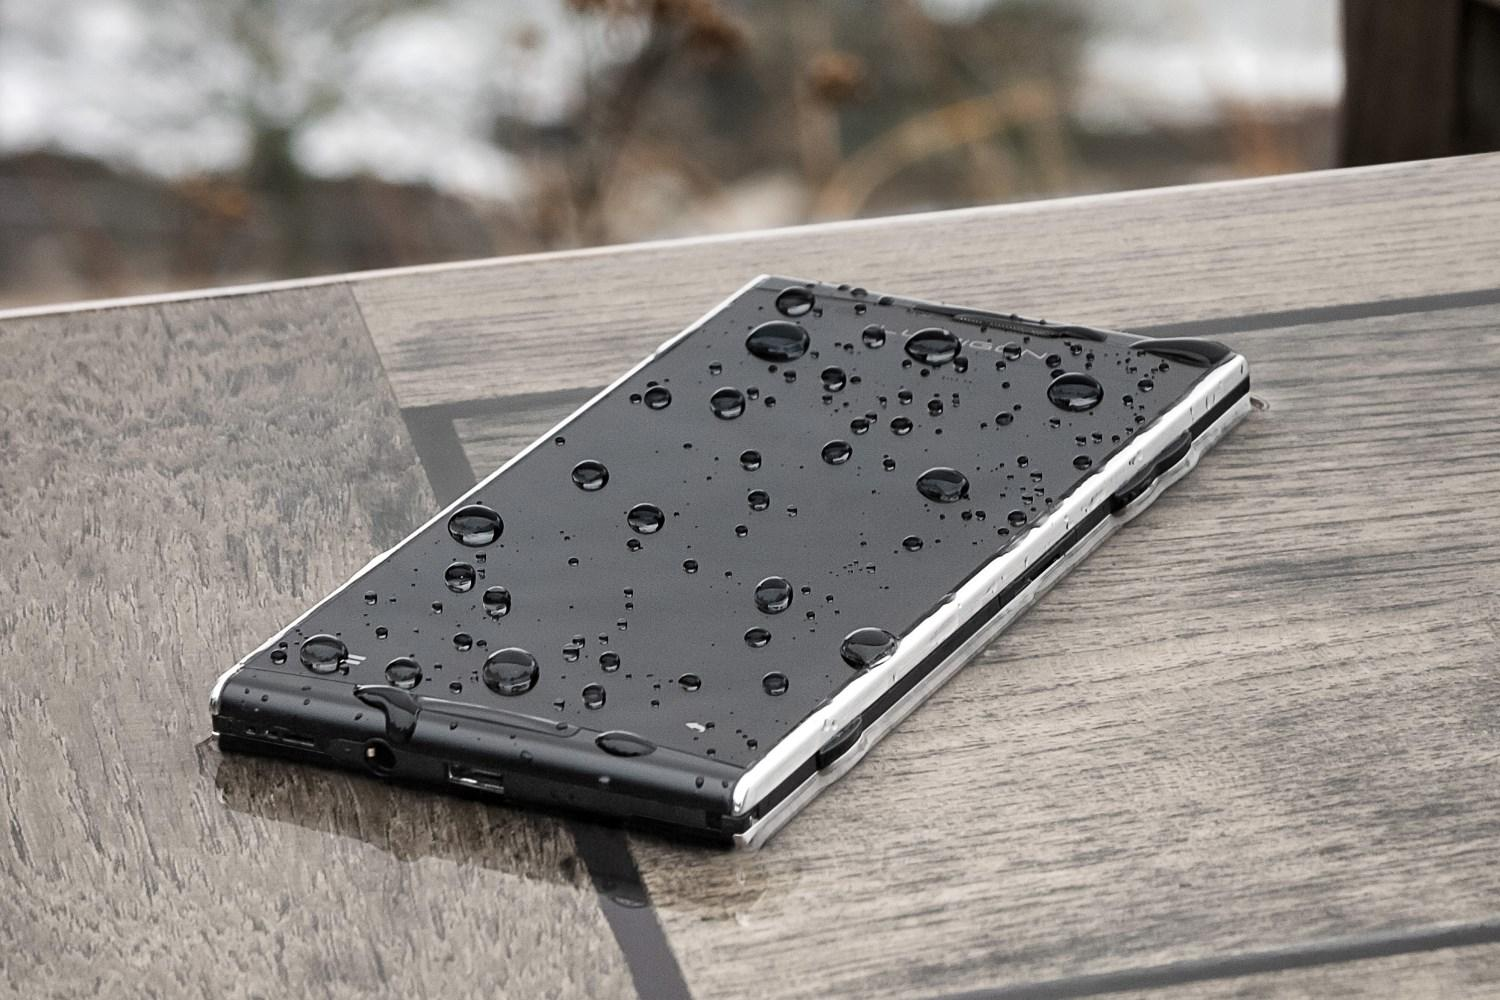 The Lumigon T2 HD Android phone features a front-facing flash and is water-resistant.